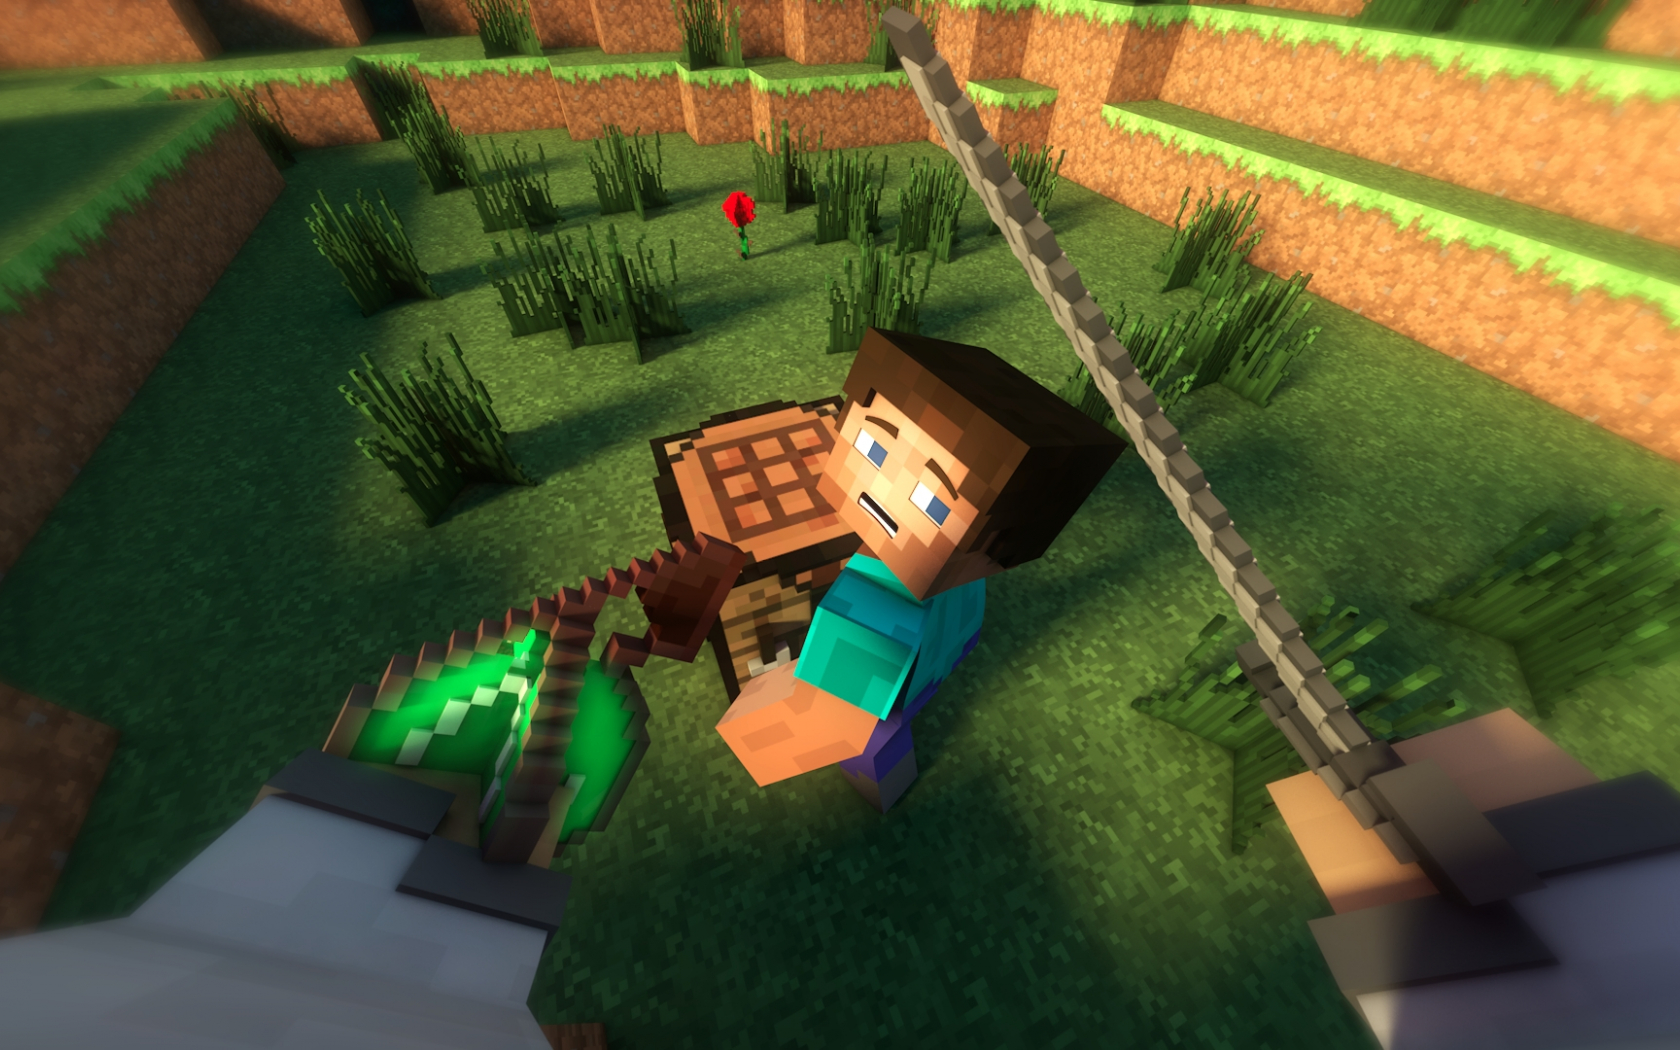 Free Download Wallpaper Minecraft 3d The Steves Kill By Thefennixcreations On 1920x1080 For Your Desktop Mobile Tablet Explore 40 3d Minecraft Wallpapers Minecraft Desktop Wallpaper Hd Minecraft Wallpapers For